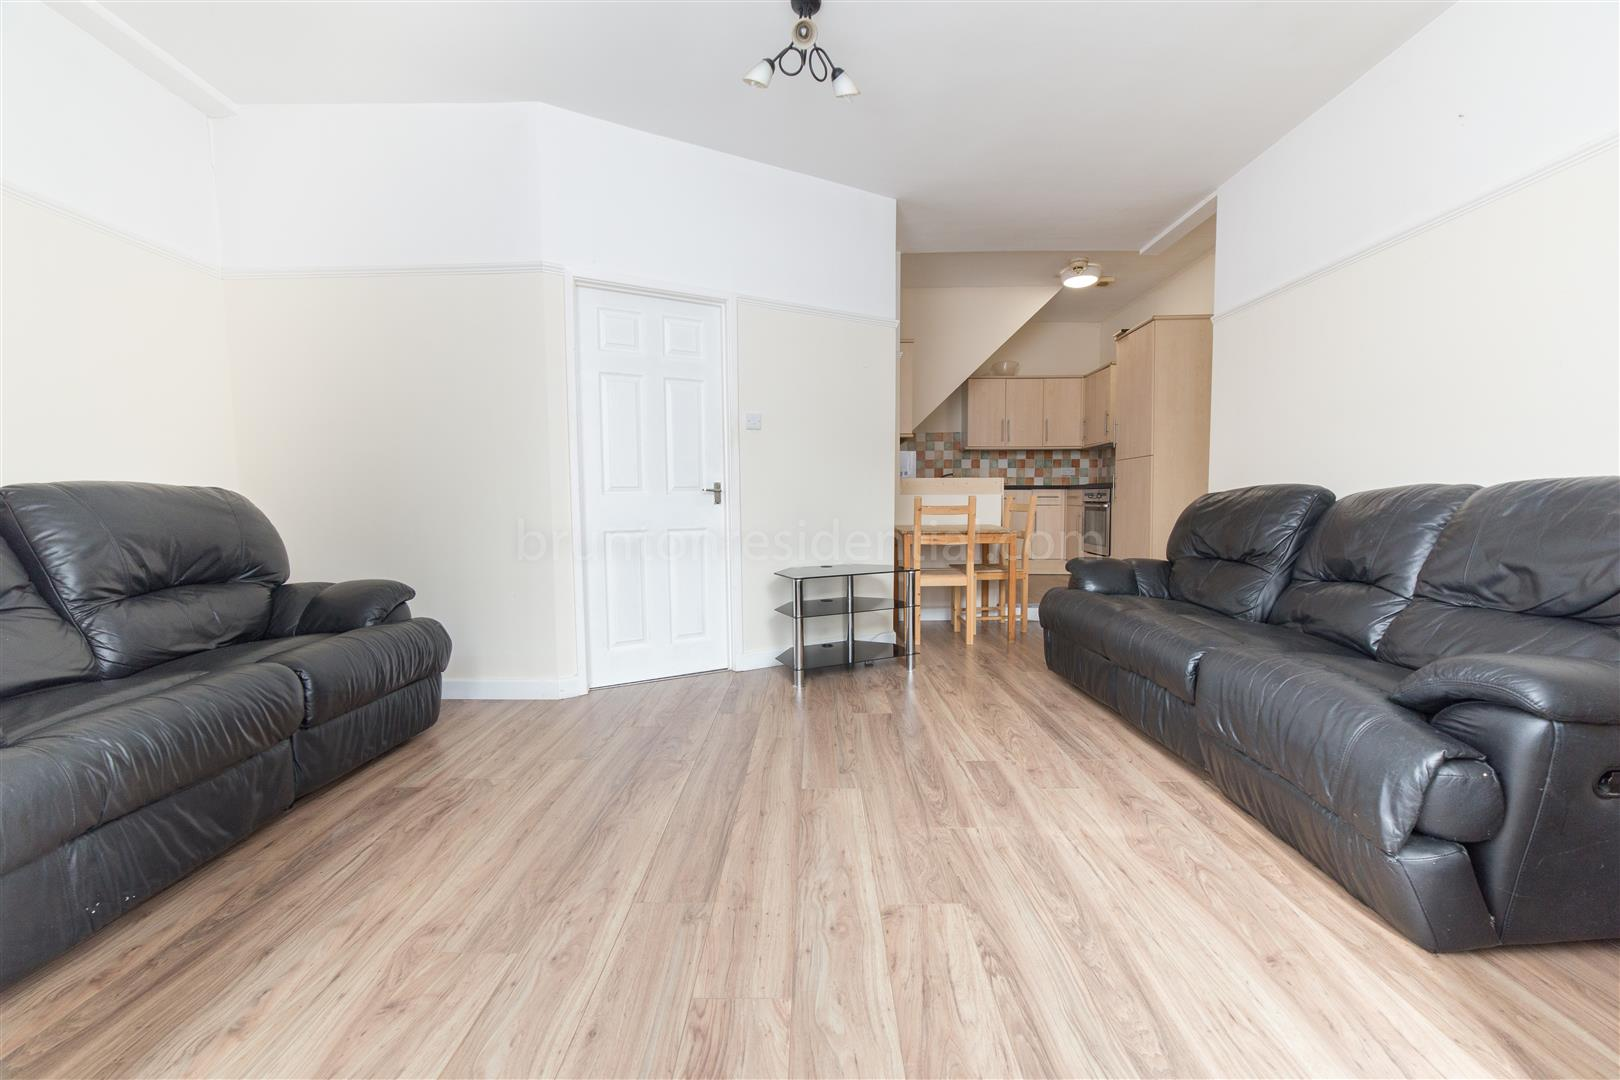 2 bed flat to rent in Newcastle Upon Tyne, NE6 5TA - Property Image 1